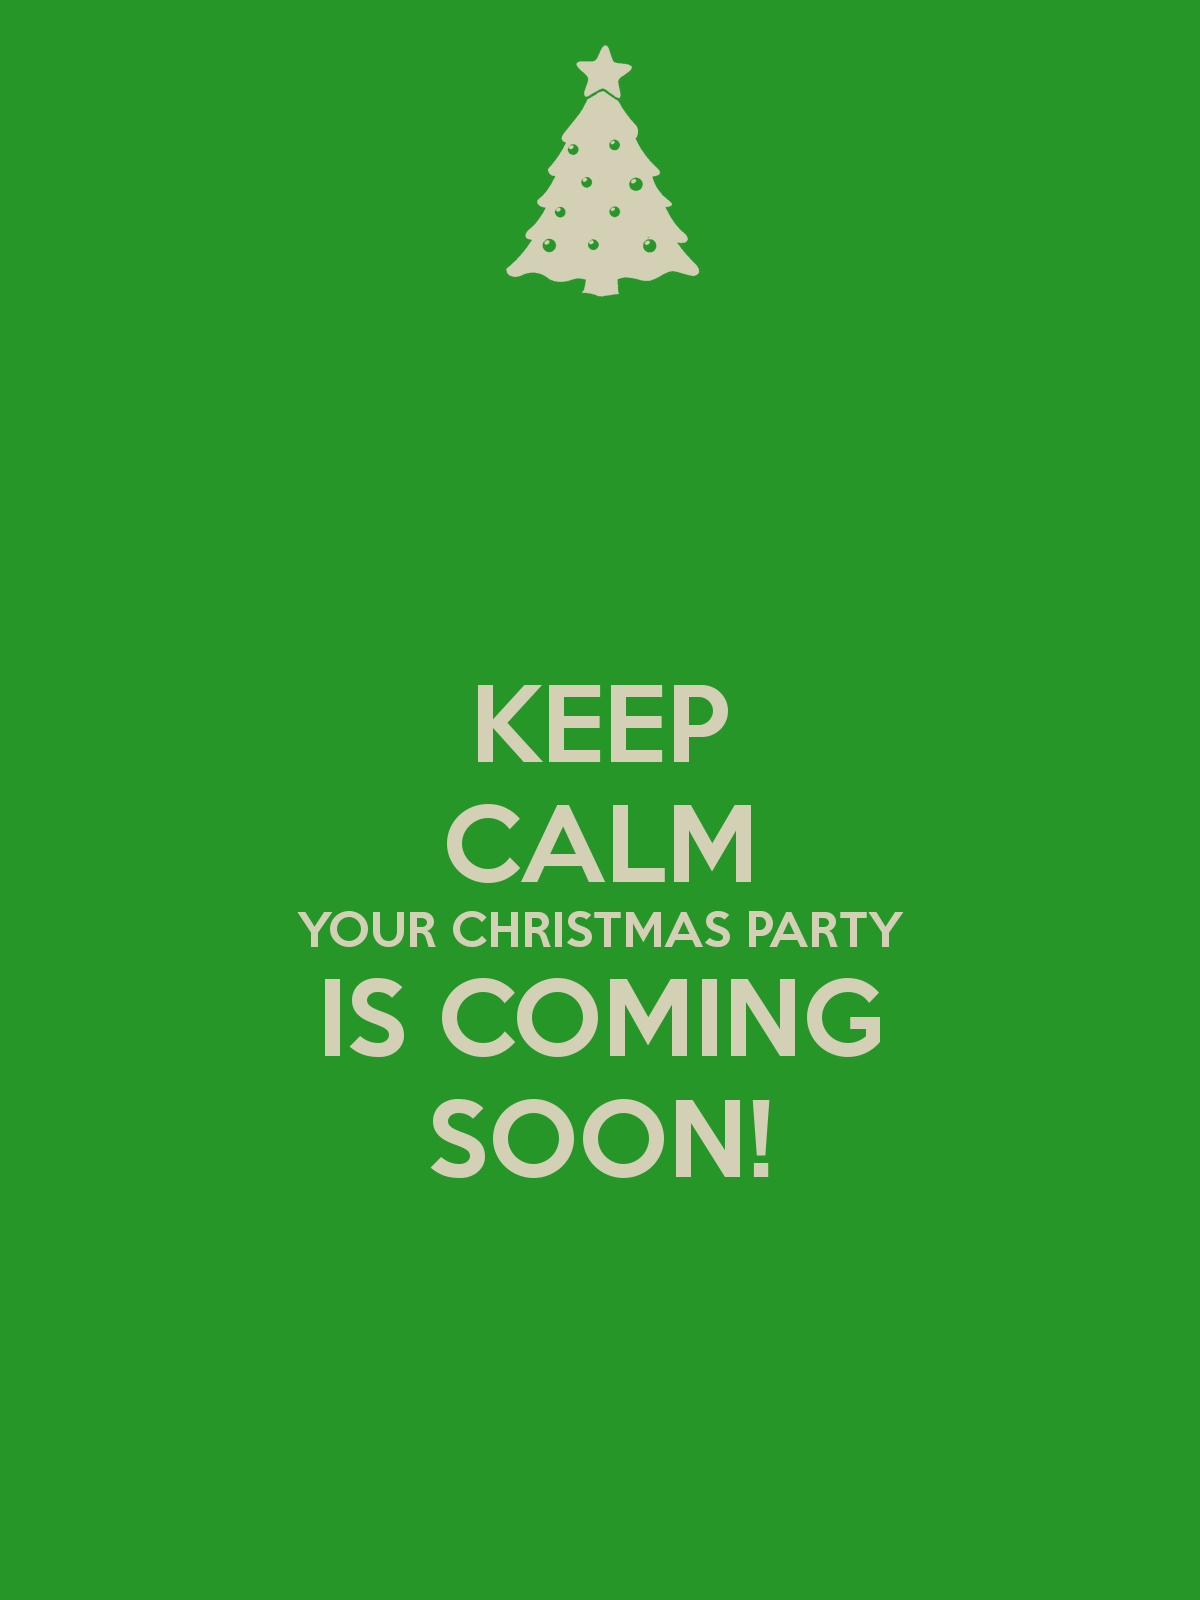 keep-calm-your-christmas-party-is-coming-soon-2